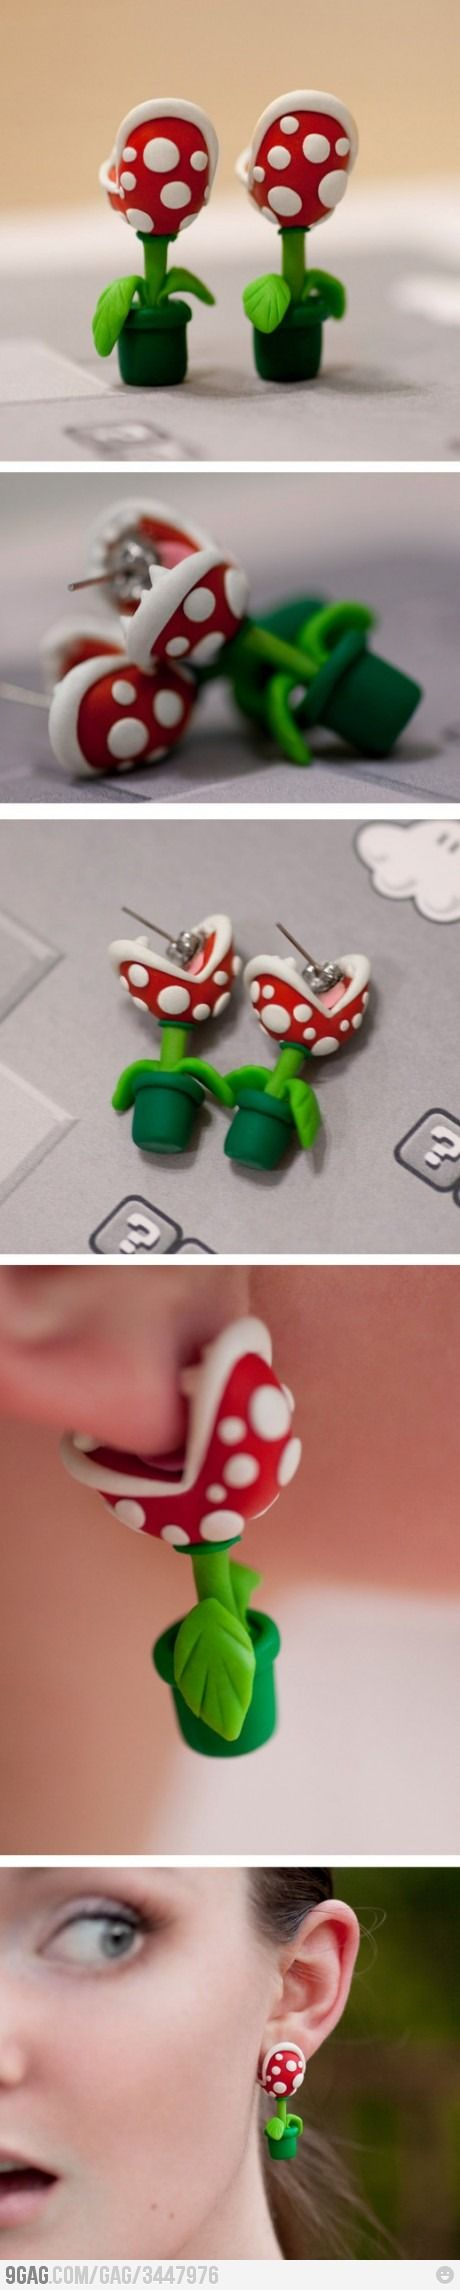 Piranha plant earrings - Love these!